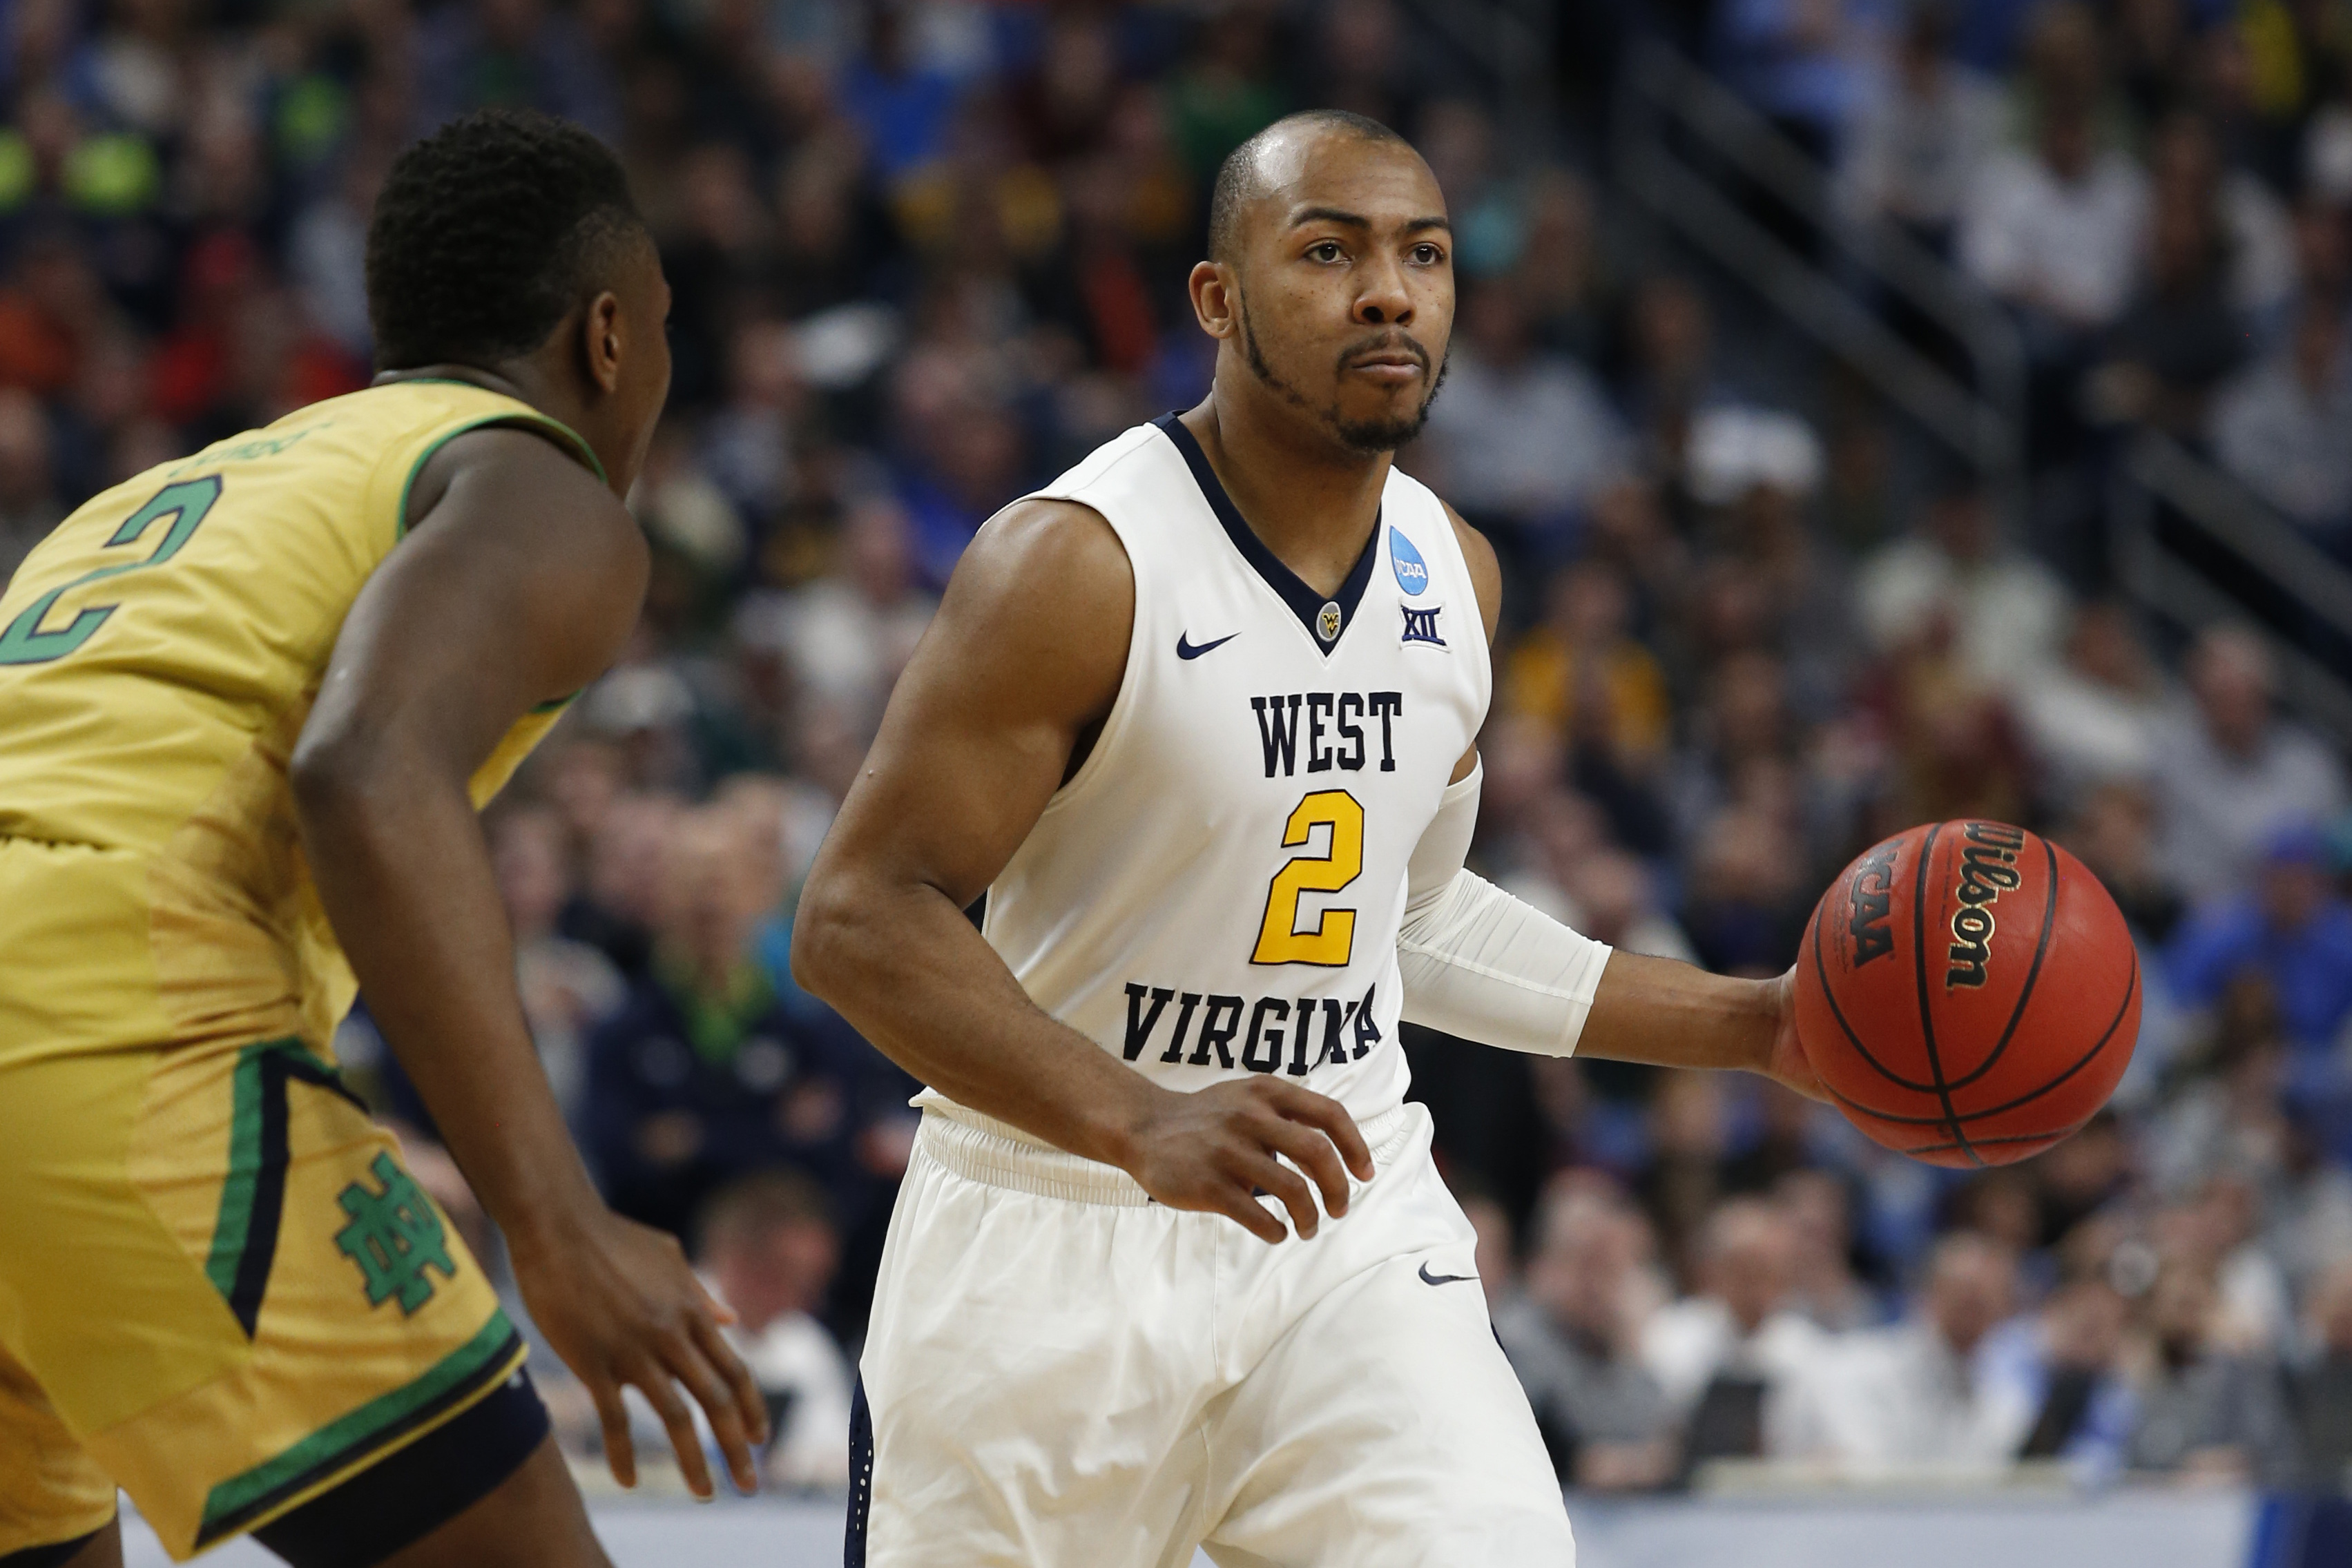 9952532-ncaa-basketball-ncaa-tournament-second-round-notre-dame-vs-west-virginia